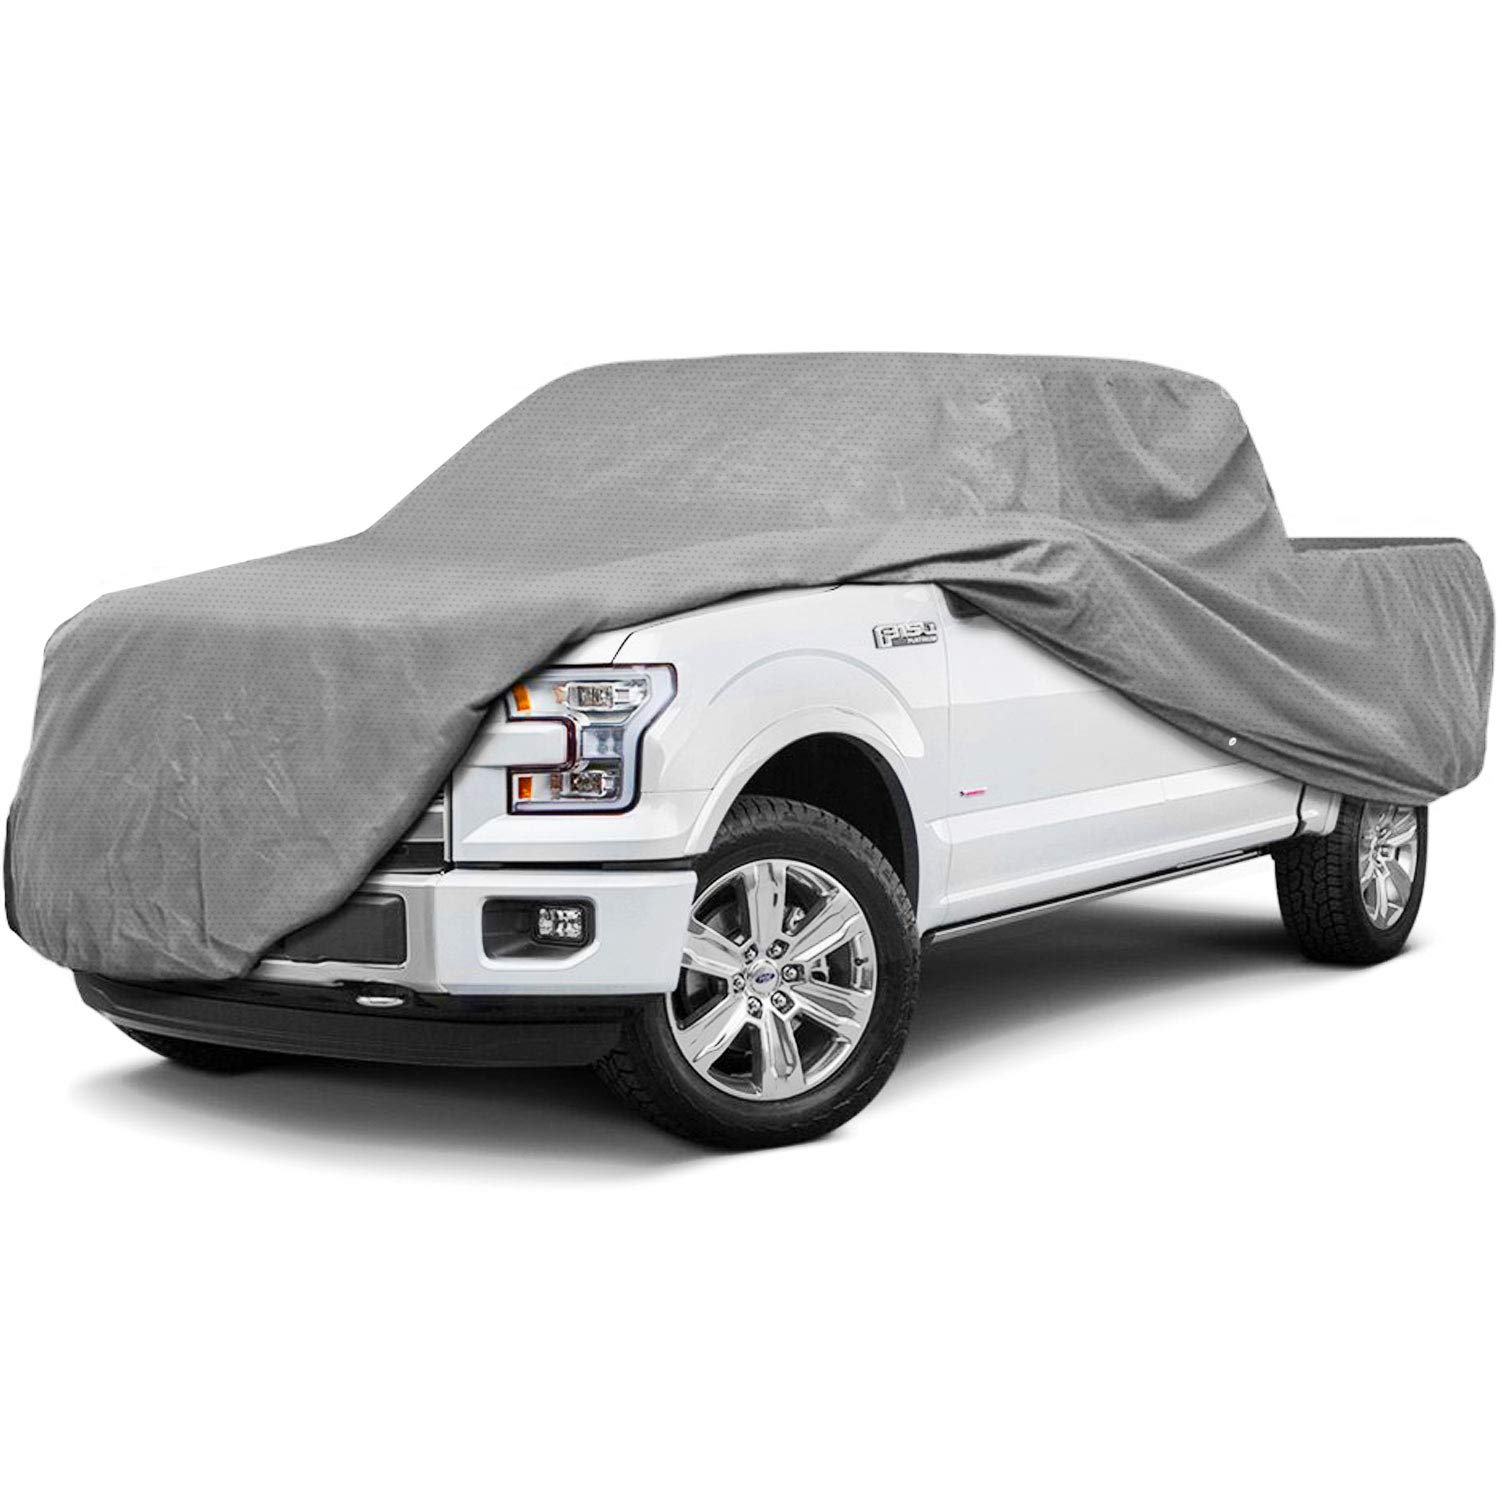 Fits Pickup Trucks with Extended Cab Superior Pickup Truck Cover 249 x 70 x 60 Gray Color Standard Bed up to 20 9 Length Waterproof All Weather Covers Breathable Outdoor Indoor